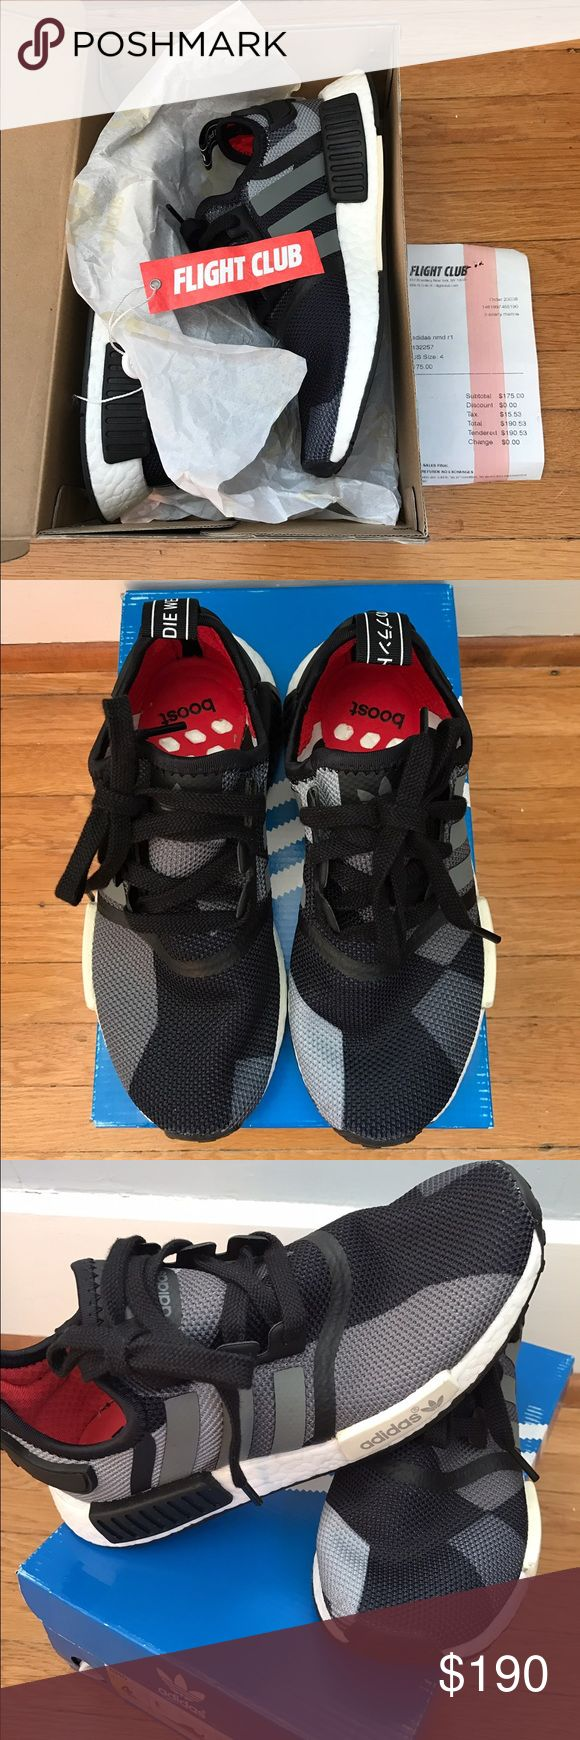 Adidas NMD R1 Grey/Black Camo Size 4 youth or 5.5 women's brand new adidas nmd r1 bought originally from flight club. Adidas Shoes Sneakers